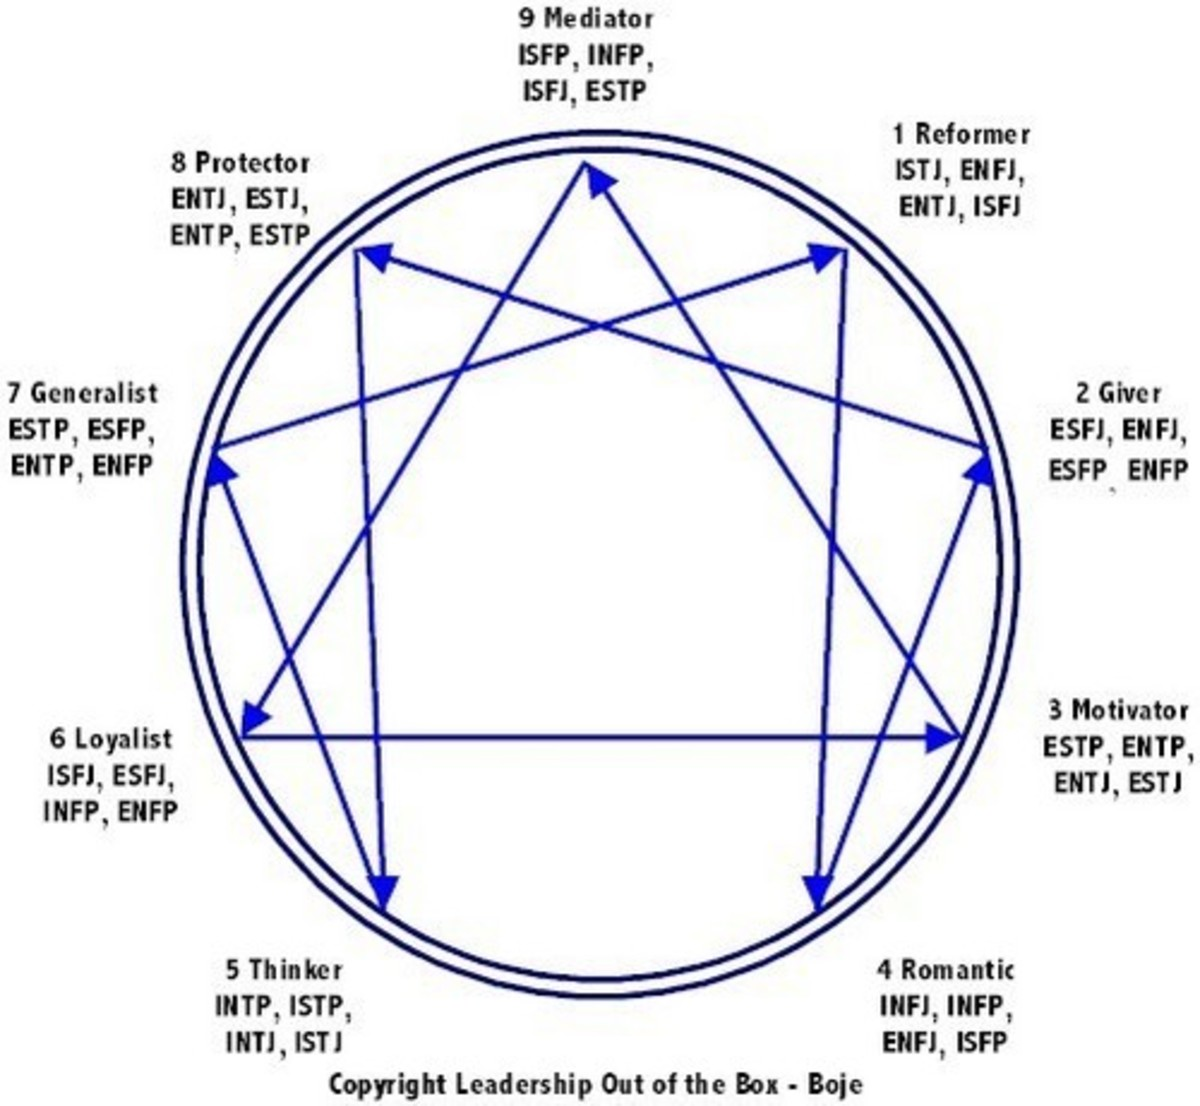 How do I find my Enneagram type?